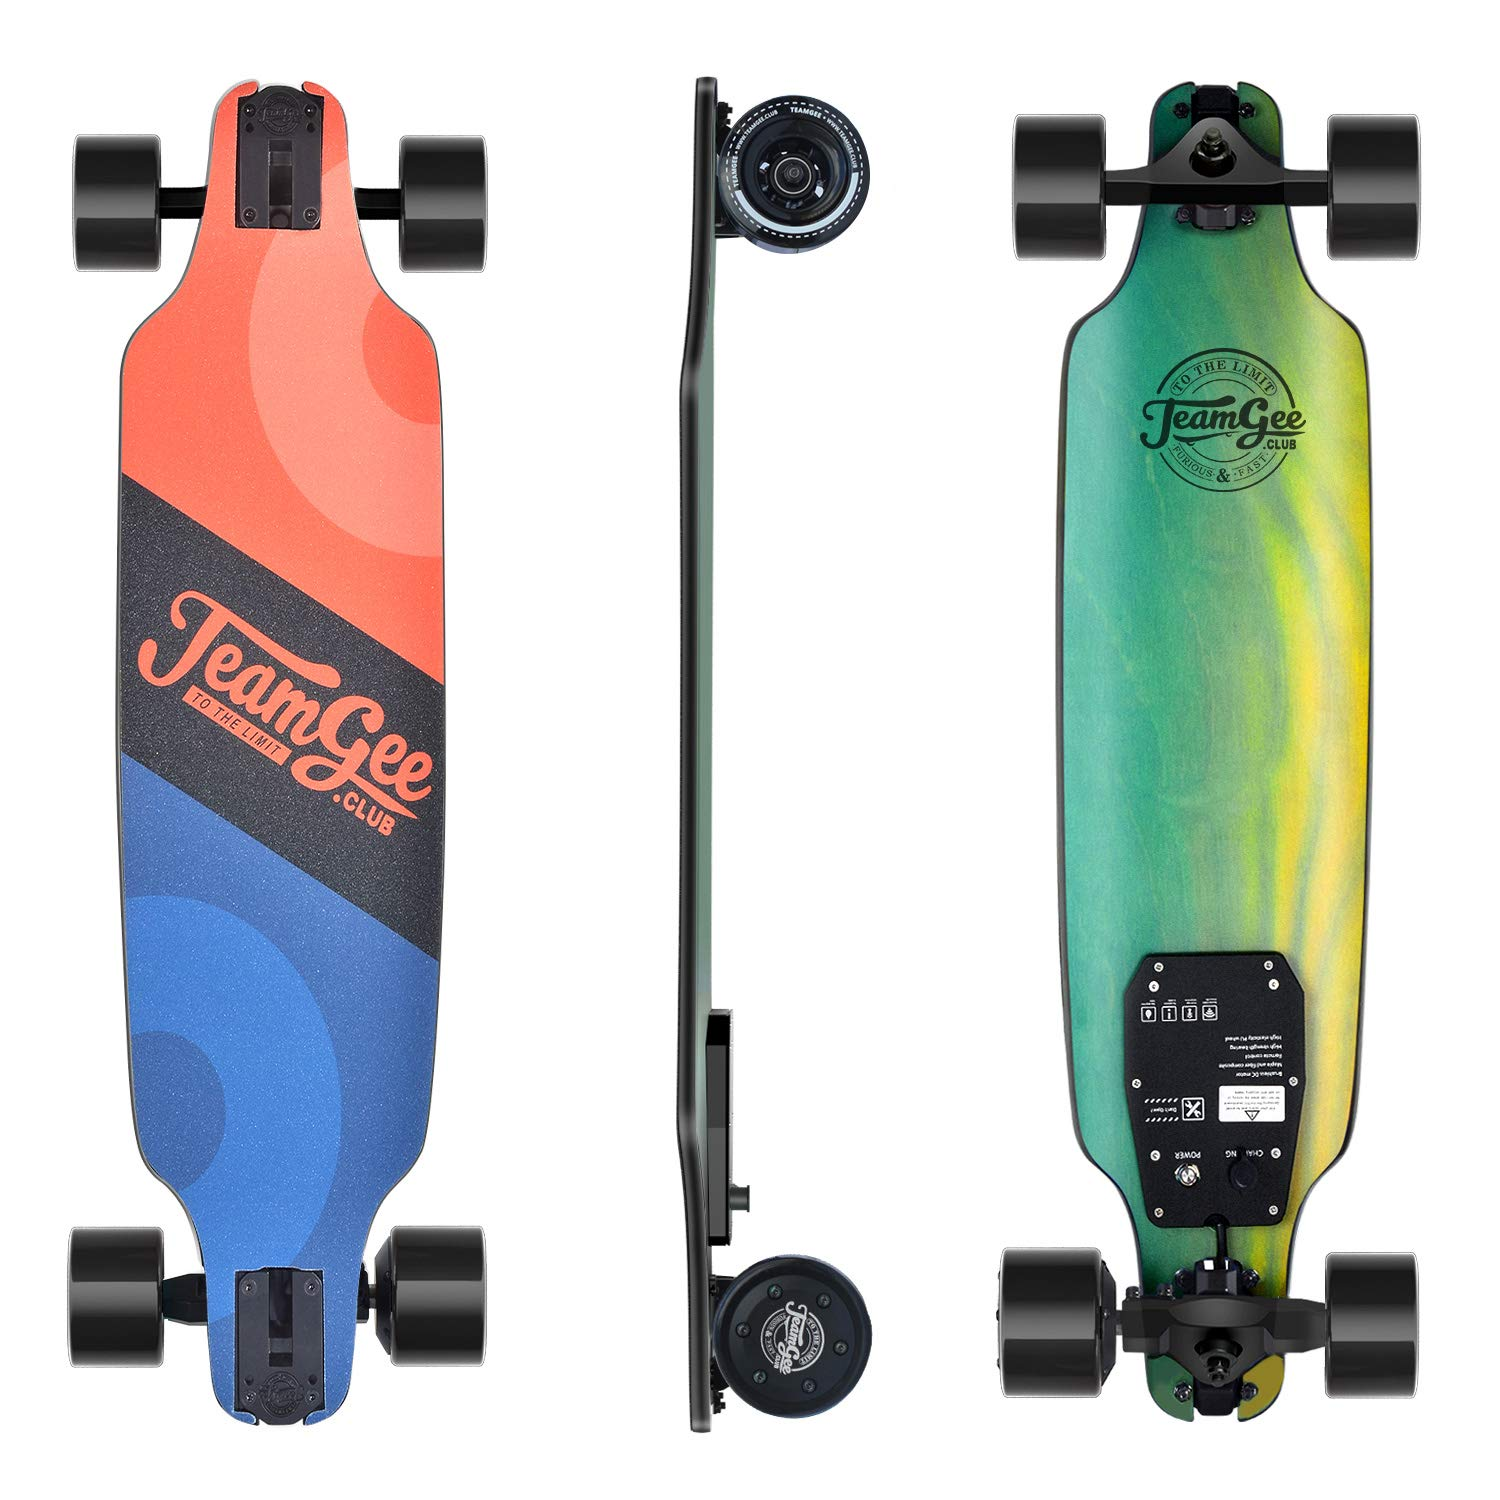 Teamgee H8 31 Electric Skateboard, 15 MPH Top Speed, 480W Motor, 8 Miles Range, 11.6 Lbs, 10 Layers Maple Longboard with Wireless Remote Control